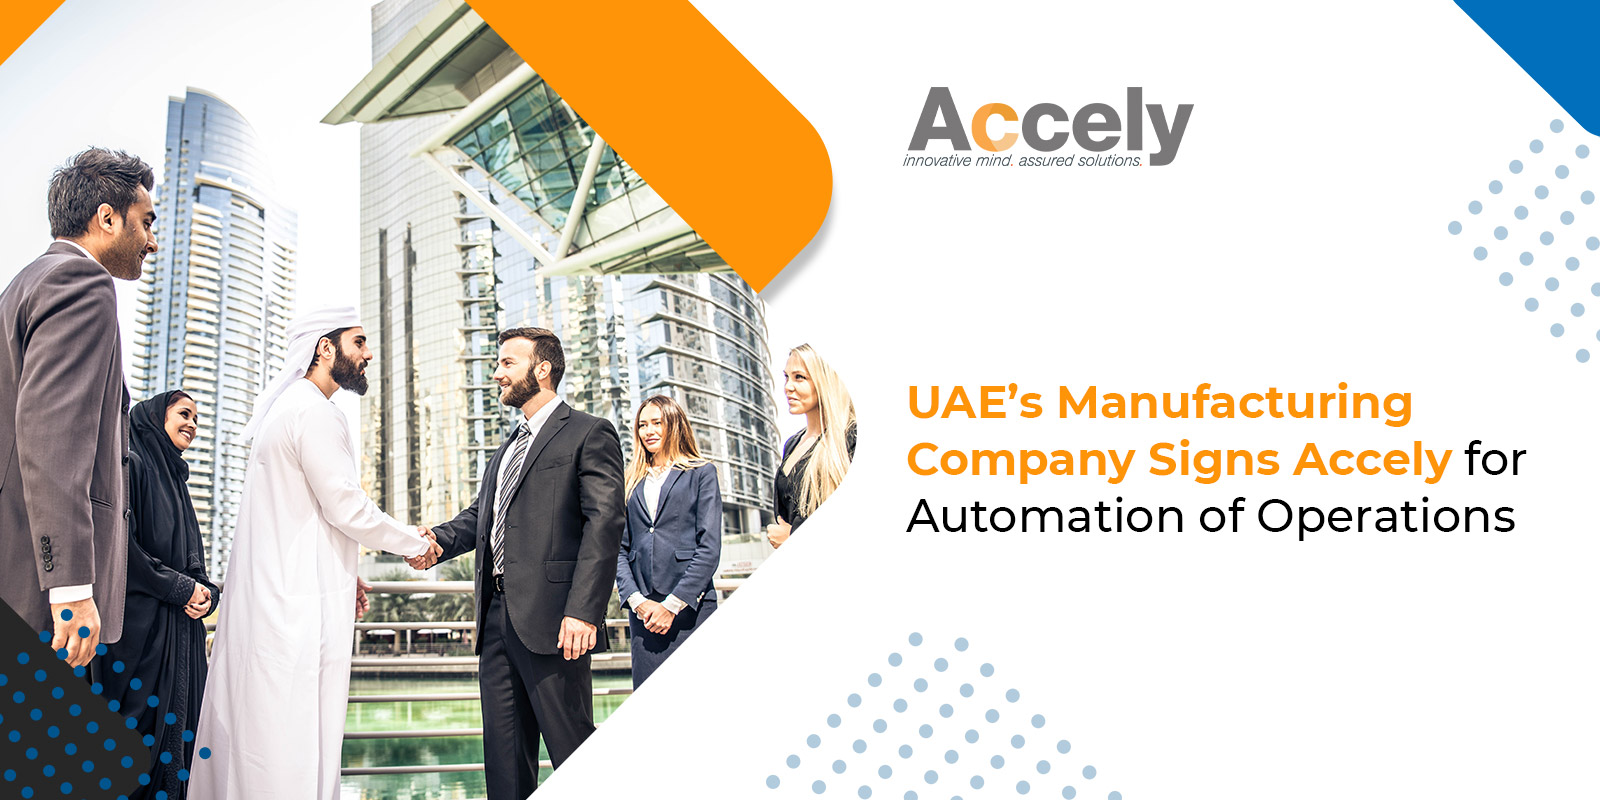 UAE's Manufacturing Company Signs Accely for Automation of Operations